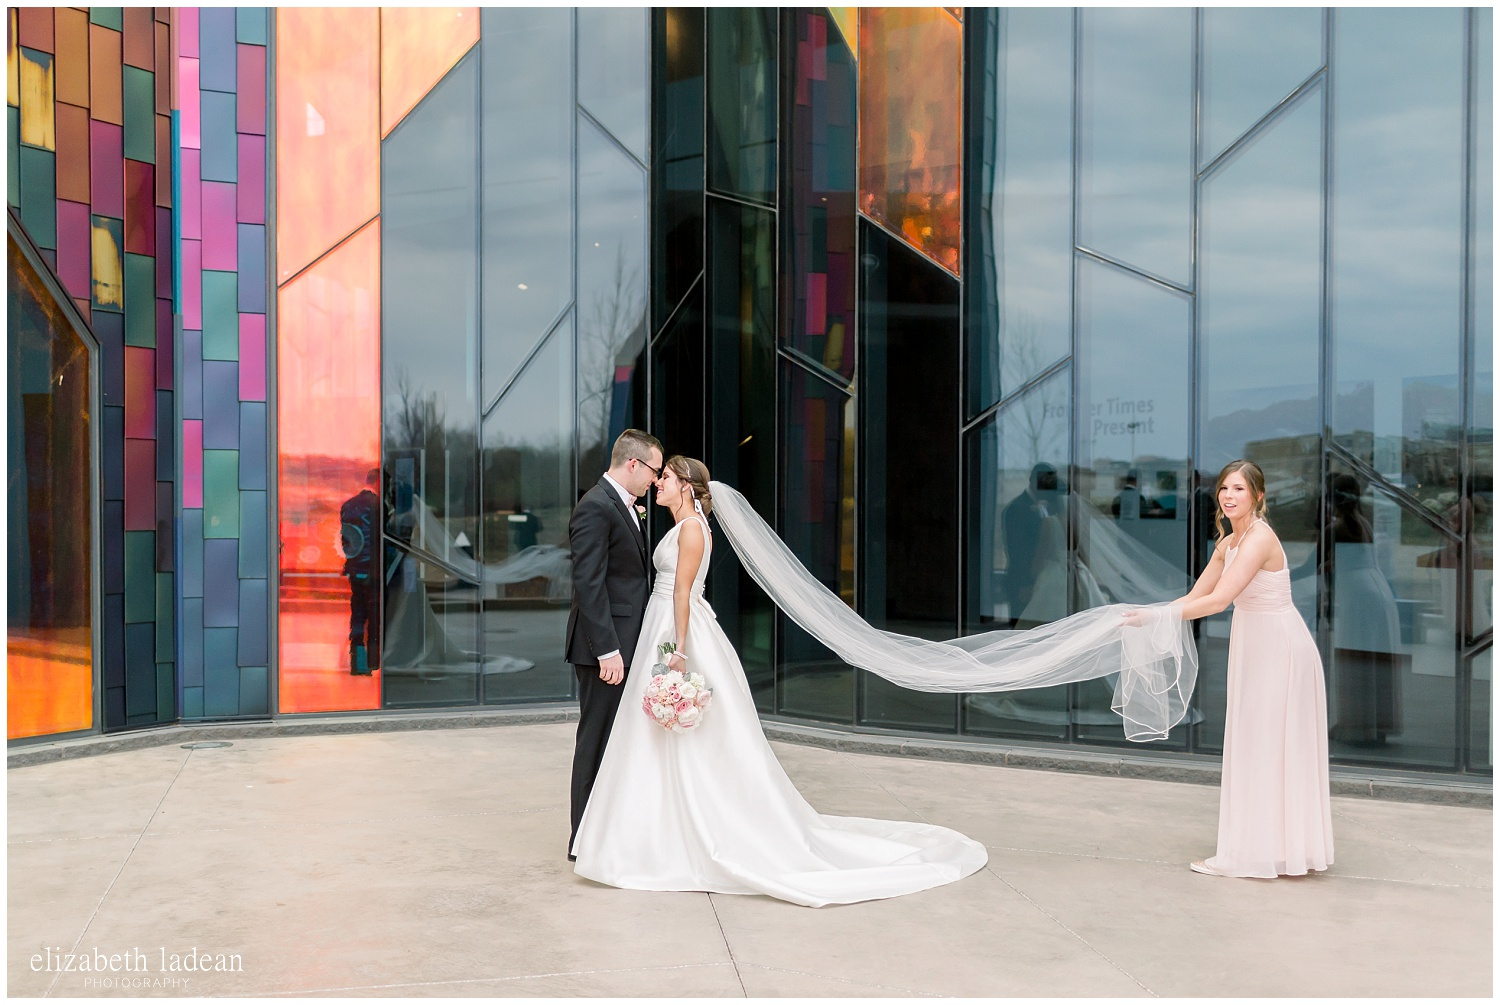 -behind-the-scenes-of-a-wedding-photographer-2018-elizabeth-ladean-photography-photo_3422.jpg